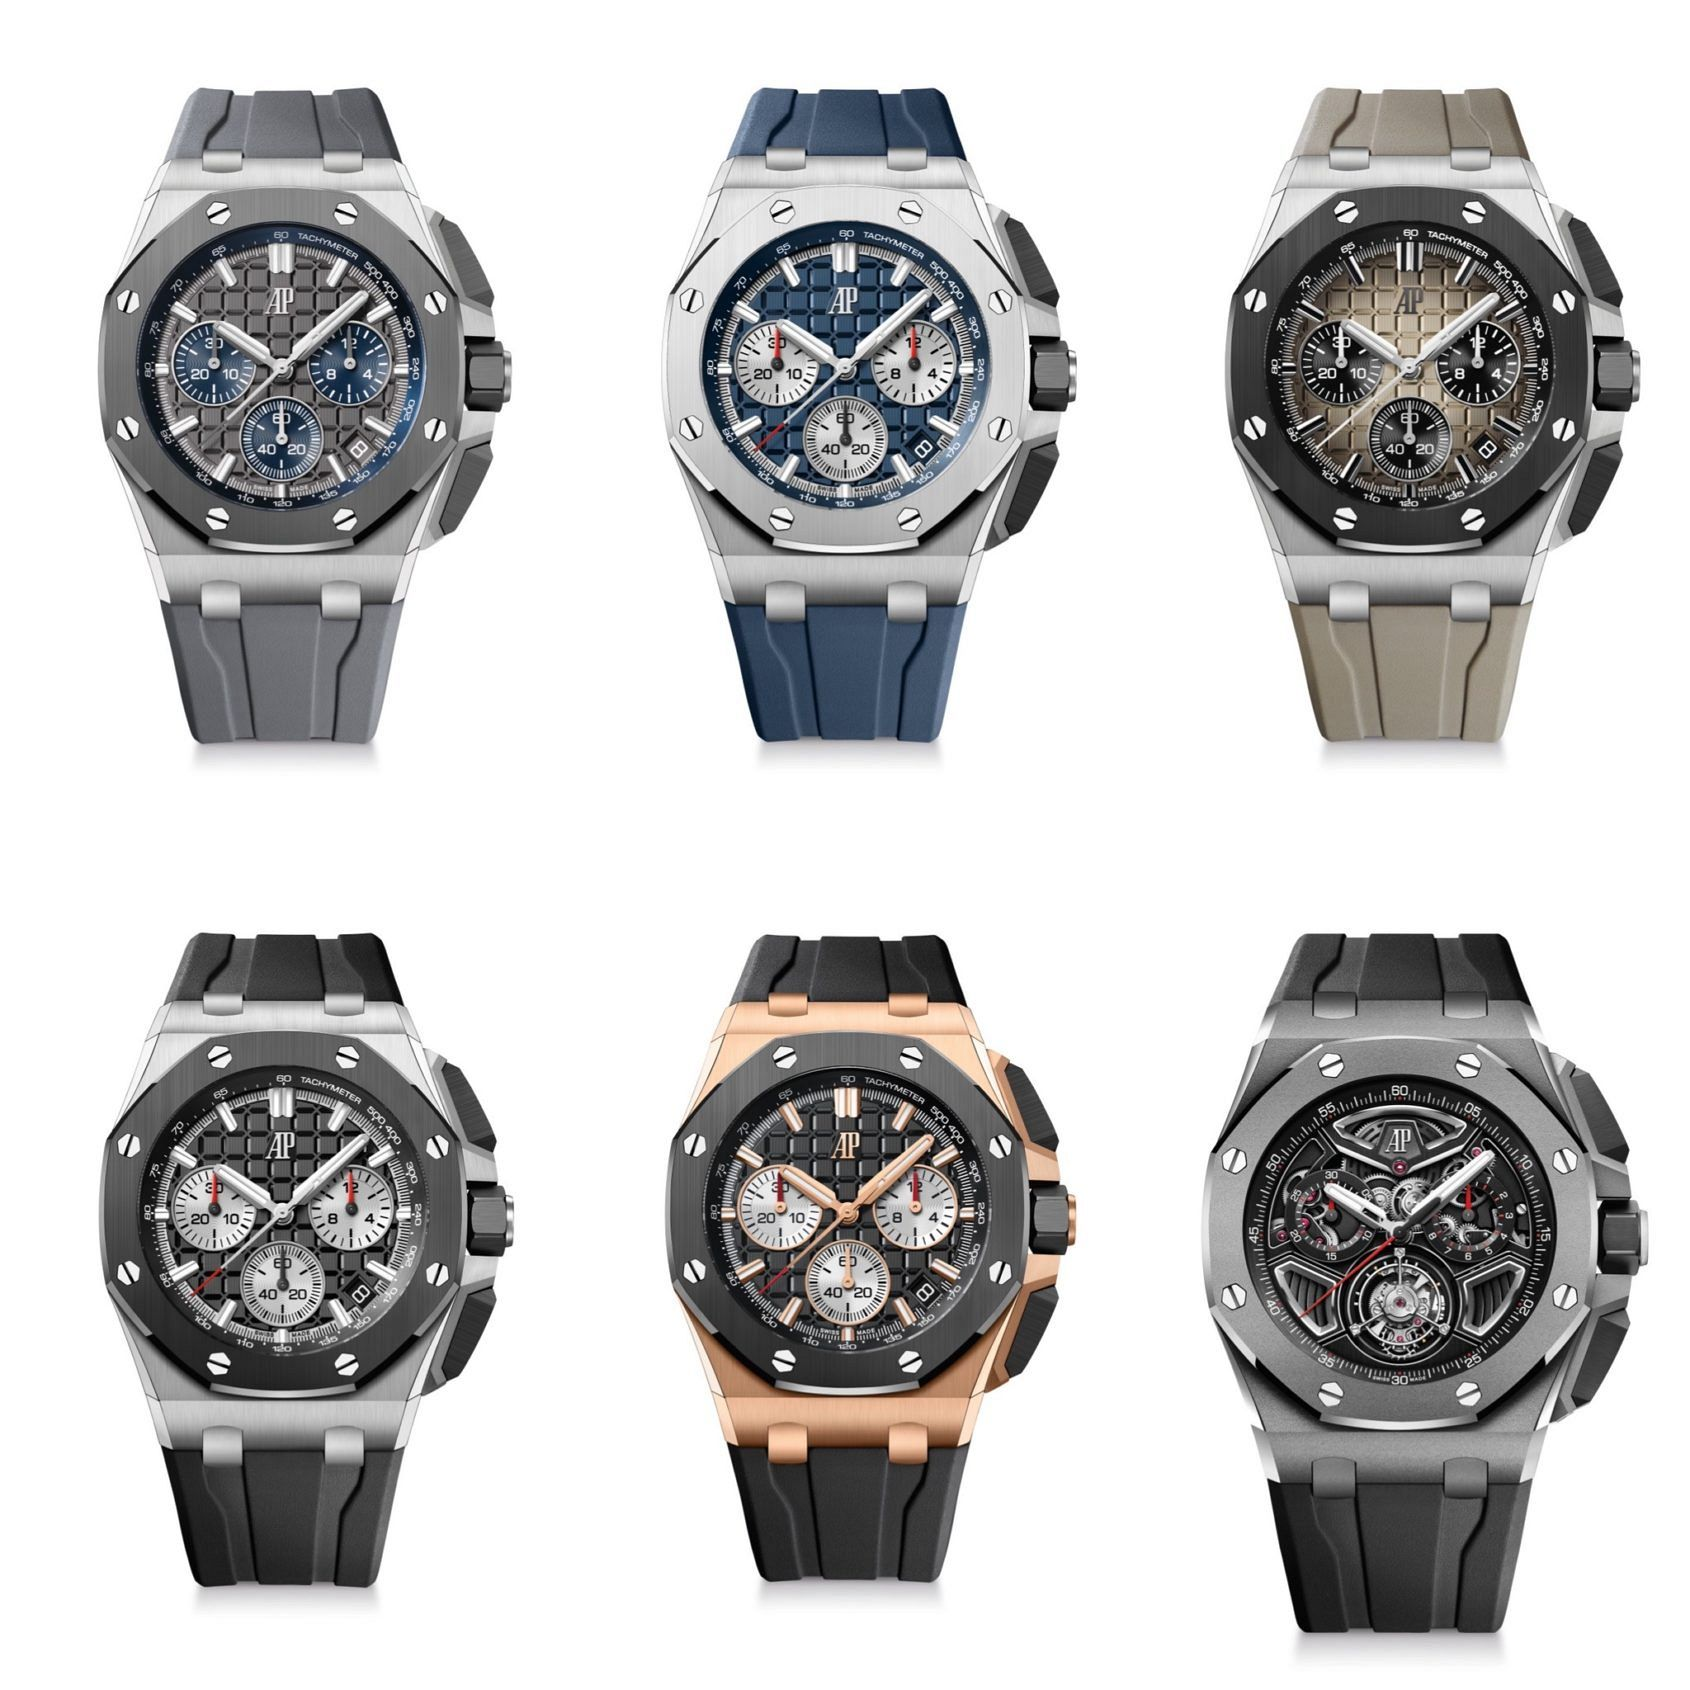 INTRODUCING: The Audemars Piguet Royal Oak Offshore 43 Flyback Chronograph & Offshore 43 Flying Tourbillon Flyback Chronograph